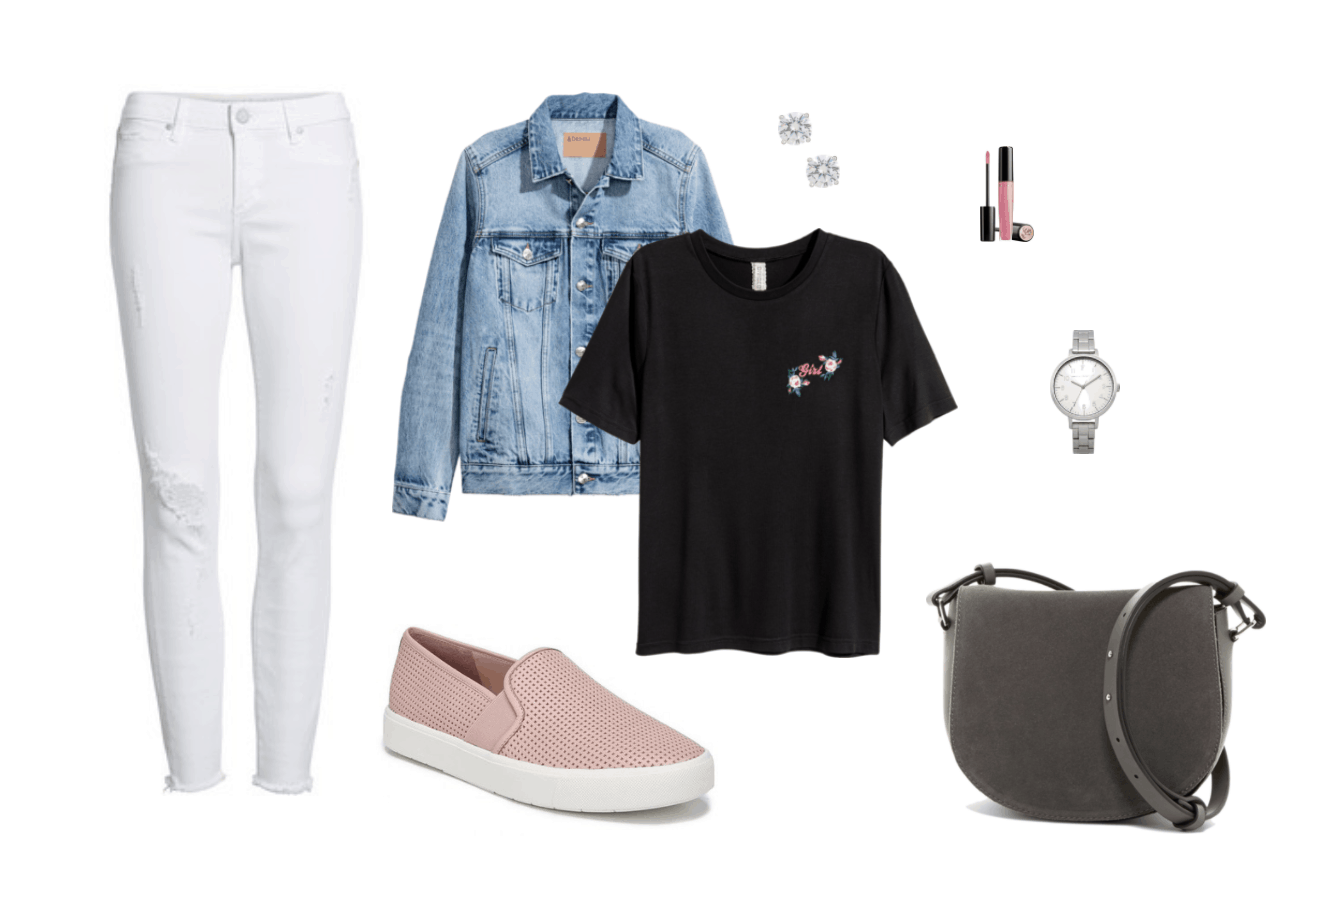 Slip-on sneakers outfit: Pink slip on sneakers, white skinny jeans, black tee shirt, denim jacket, earrings, gray crossbody bag